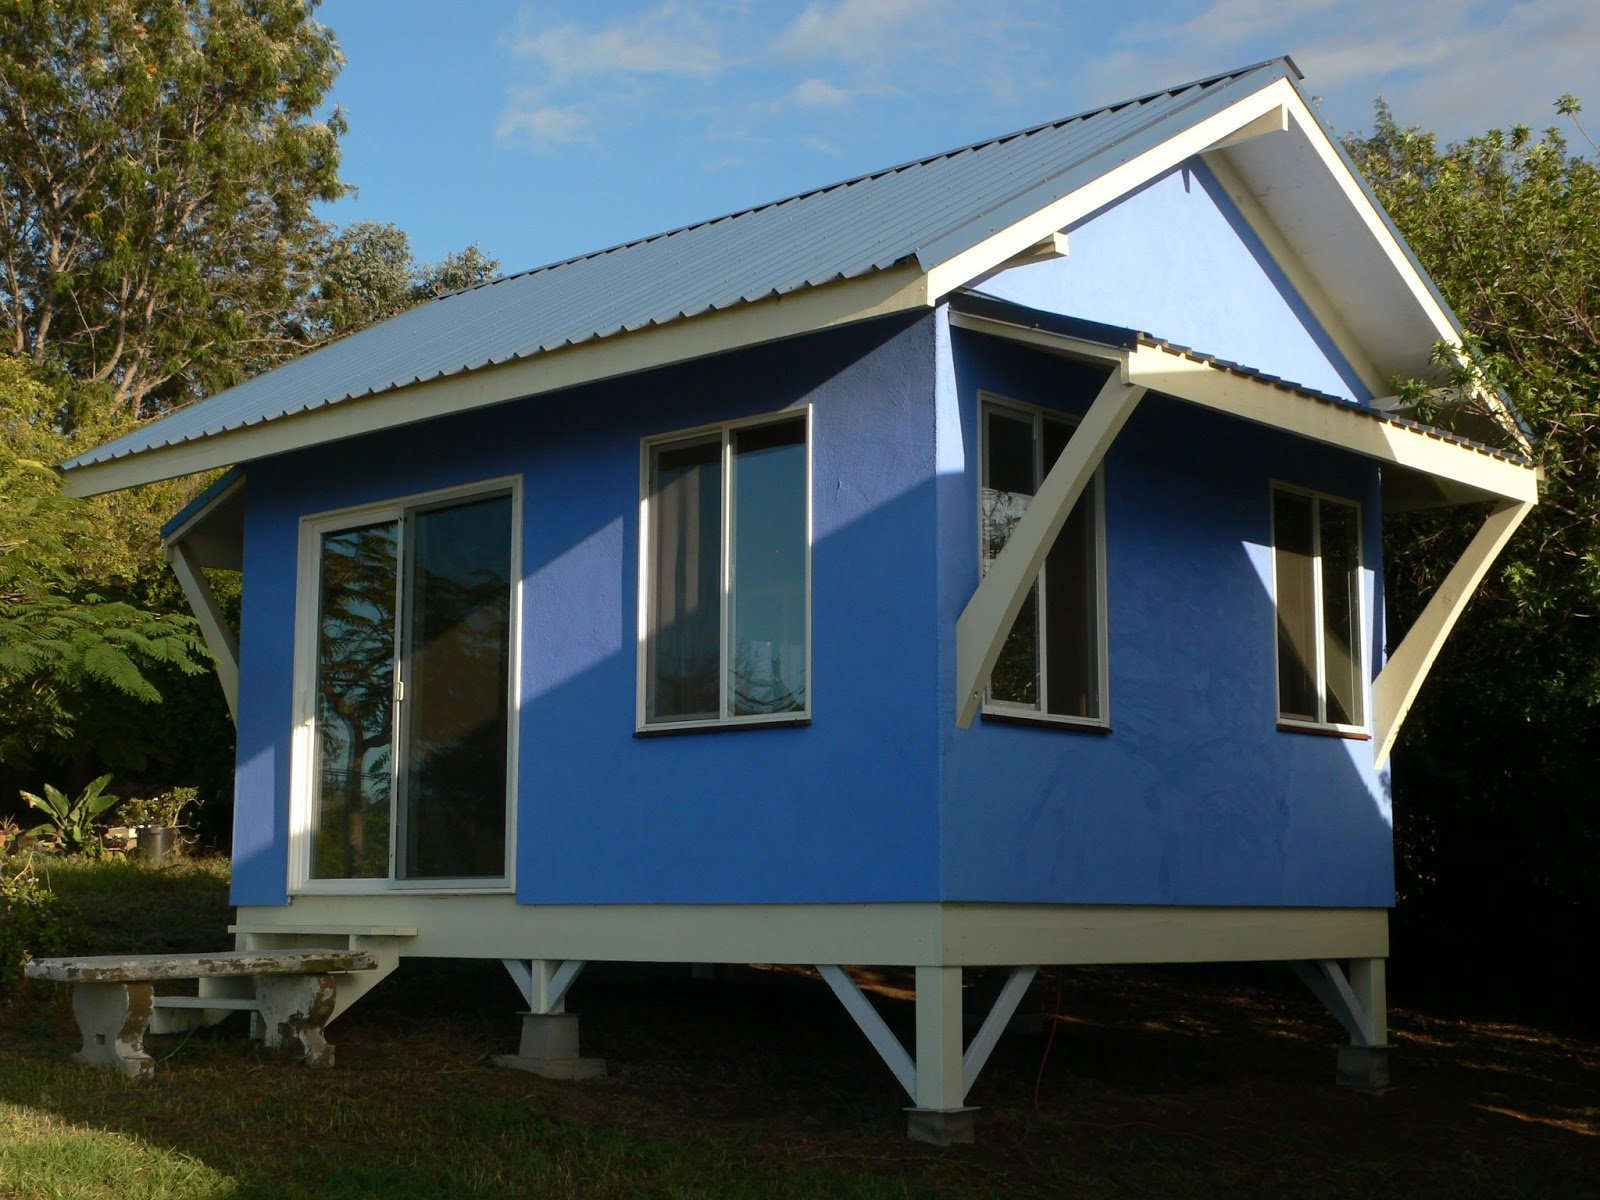 50 photos of small but beautiful and low cost houses that for Low cost small house plans